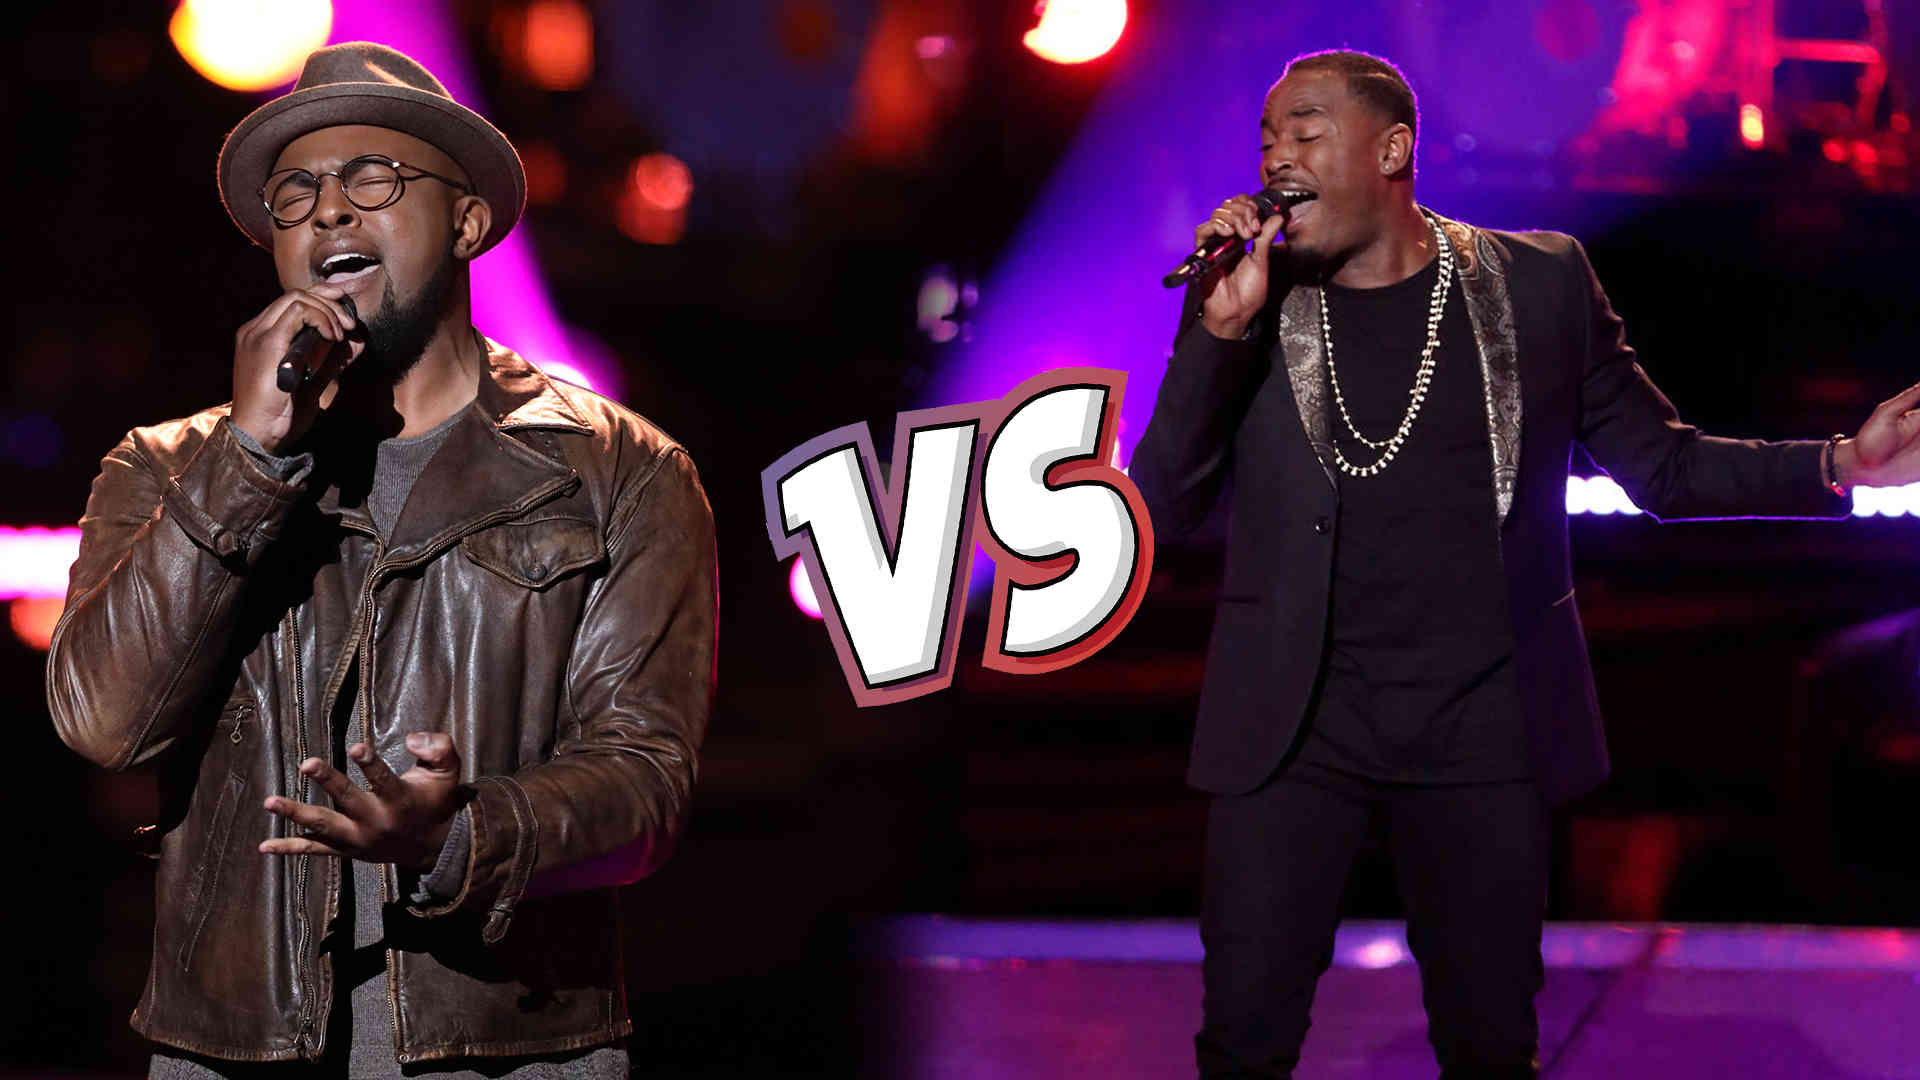 Watch The Voice USA 2018 Knockout RAYSHUN LAMARR vs Gary Edwards full Performance Video 9 April 2018